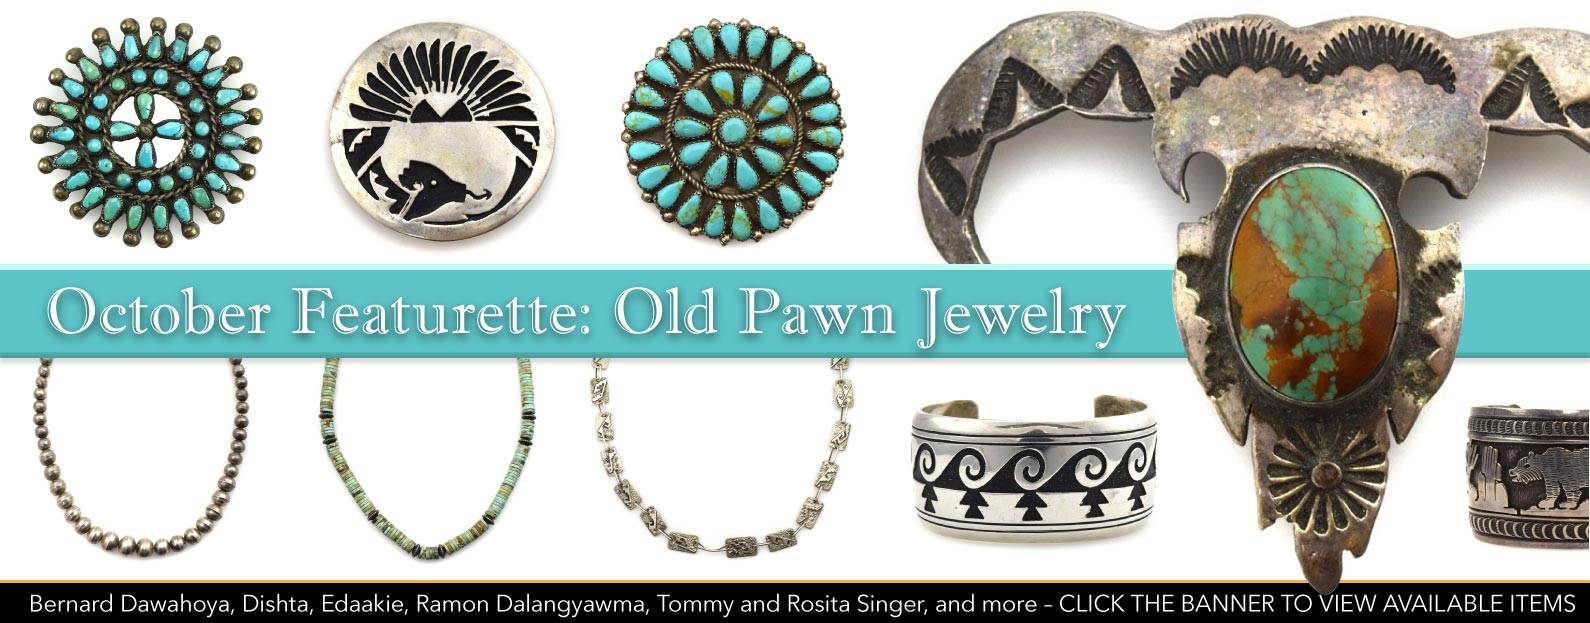 October Featurette: Old Pawn Jewelry from Bernard Dawahoya, Dishta, Edaakie, Ramon Dalangyawma, Tommy and Rosita Singer, and More